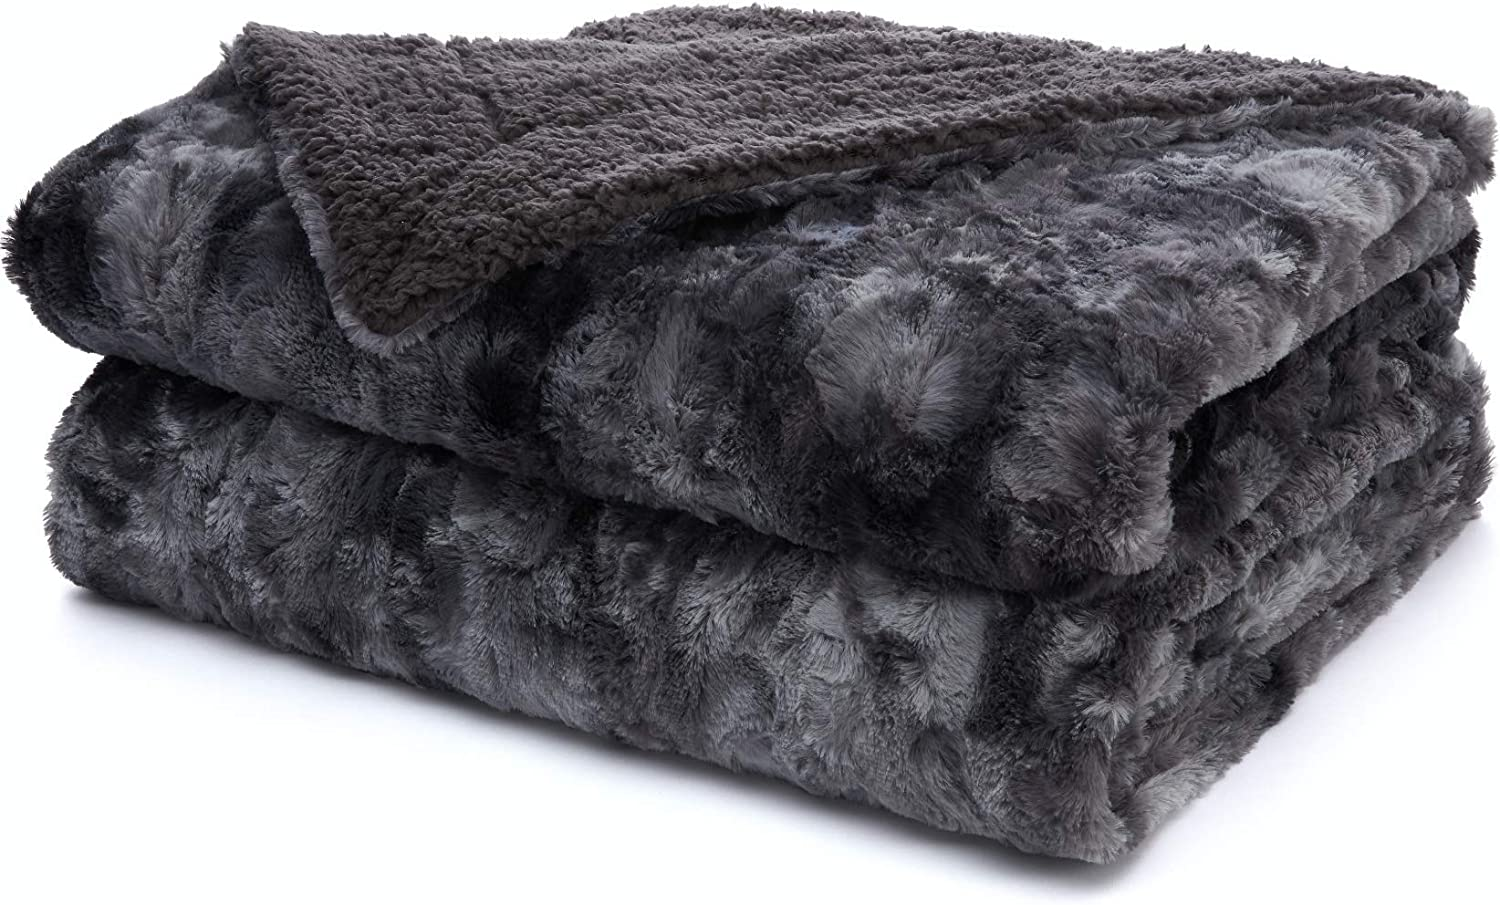 The Connecticut Home Company Faux Fur Bed Throw Blanket, Twin Size, 80x60, Many Colors Soft Large Plush Luxury Reversible Blankets, Warm Hypoallergenic Washable Throws for Couch or Beds, Gray Tie Dye